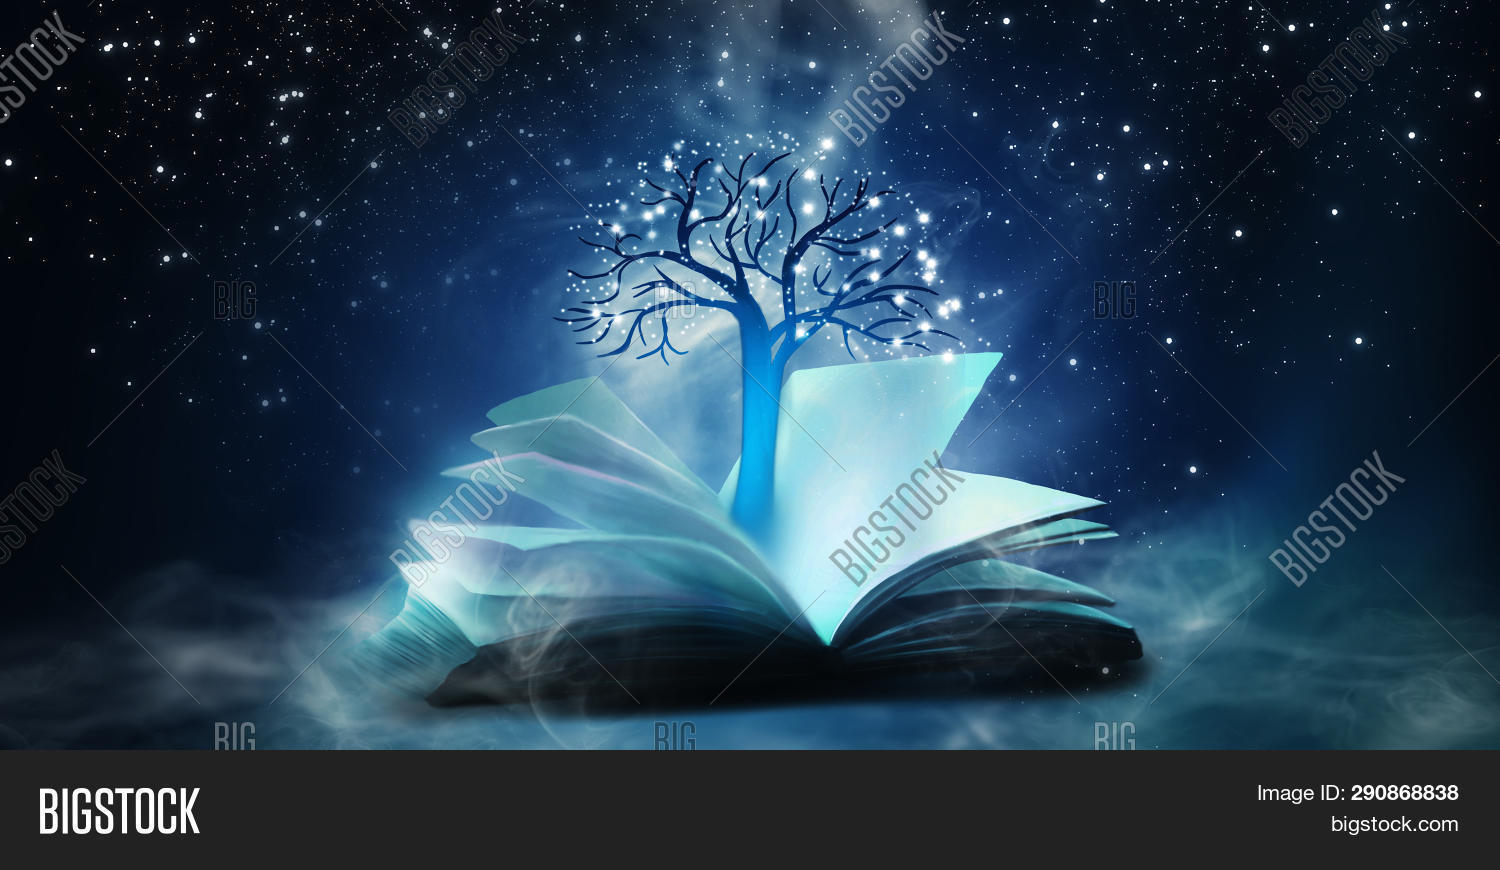 art,background,bible,black,blue,book,bookstore,bright,concept,dark,design,dream,education,fairy,fairytale,fantasy,glow,glowing,imagination,information,intelligence,knowledge,learning,library,light,literature,magic,magical,mystery,object,old,open,page,paper,reading,religion,school,shine,stars,story,study,studying,symbol,text,textbook,vintage,wallpaper